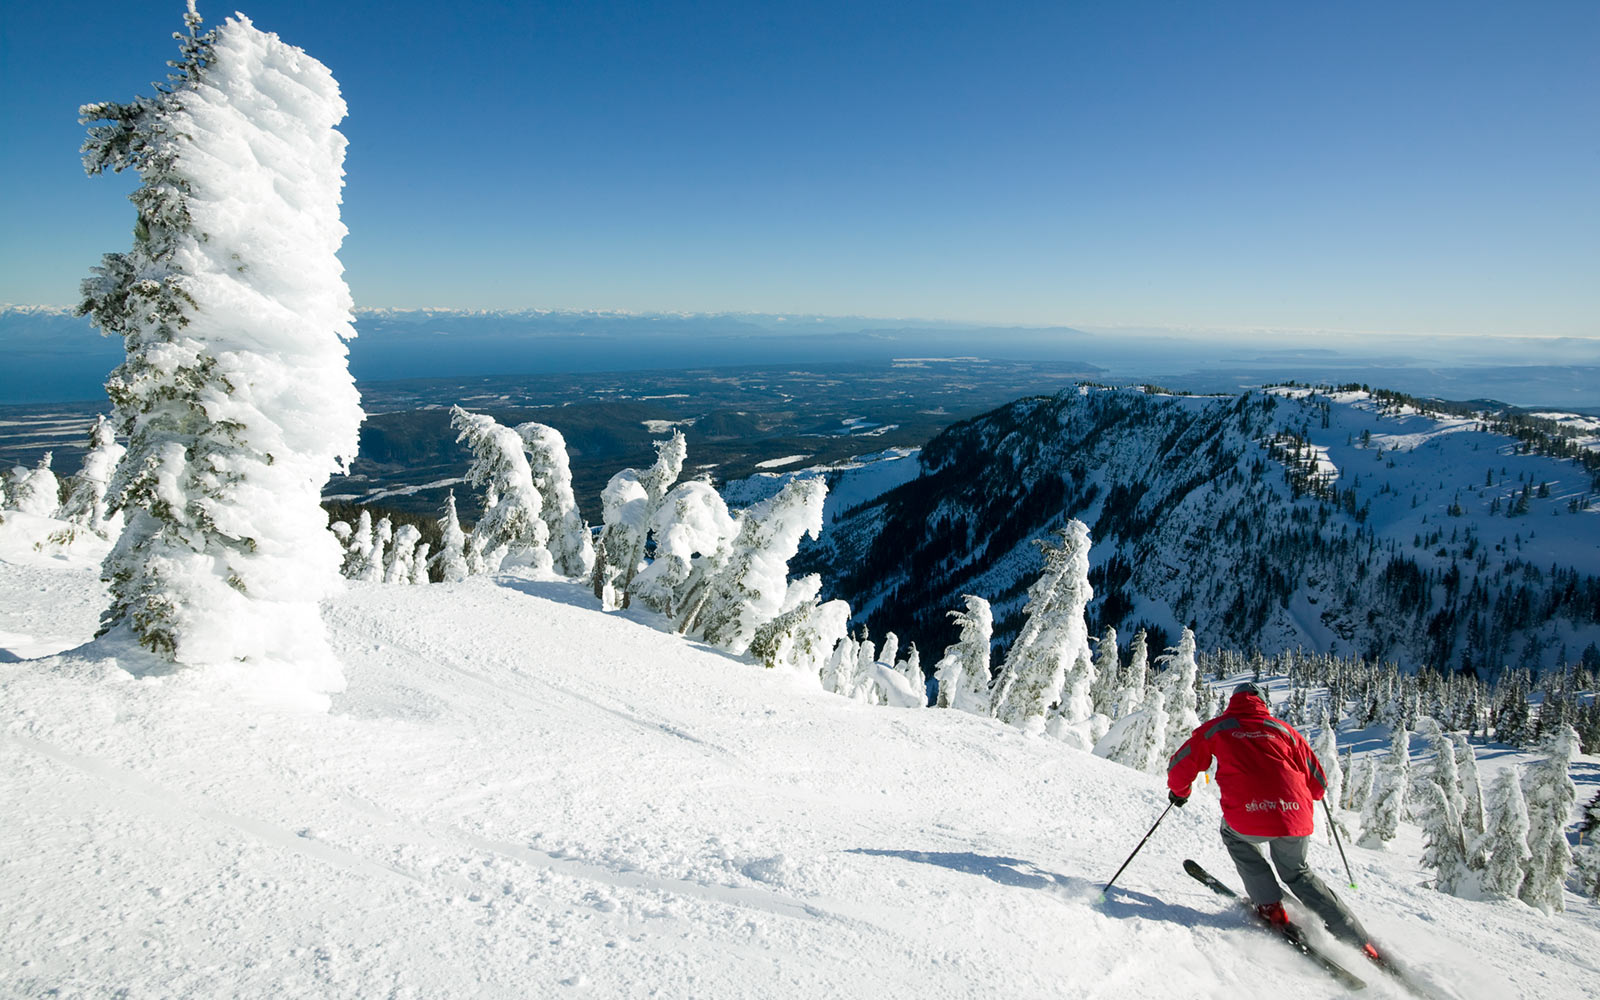 Skier, Mt. Washington Alpine Resort, Vancouver Island, British Columbia, Canada